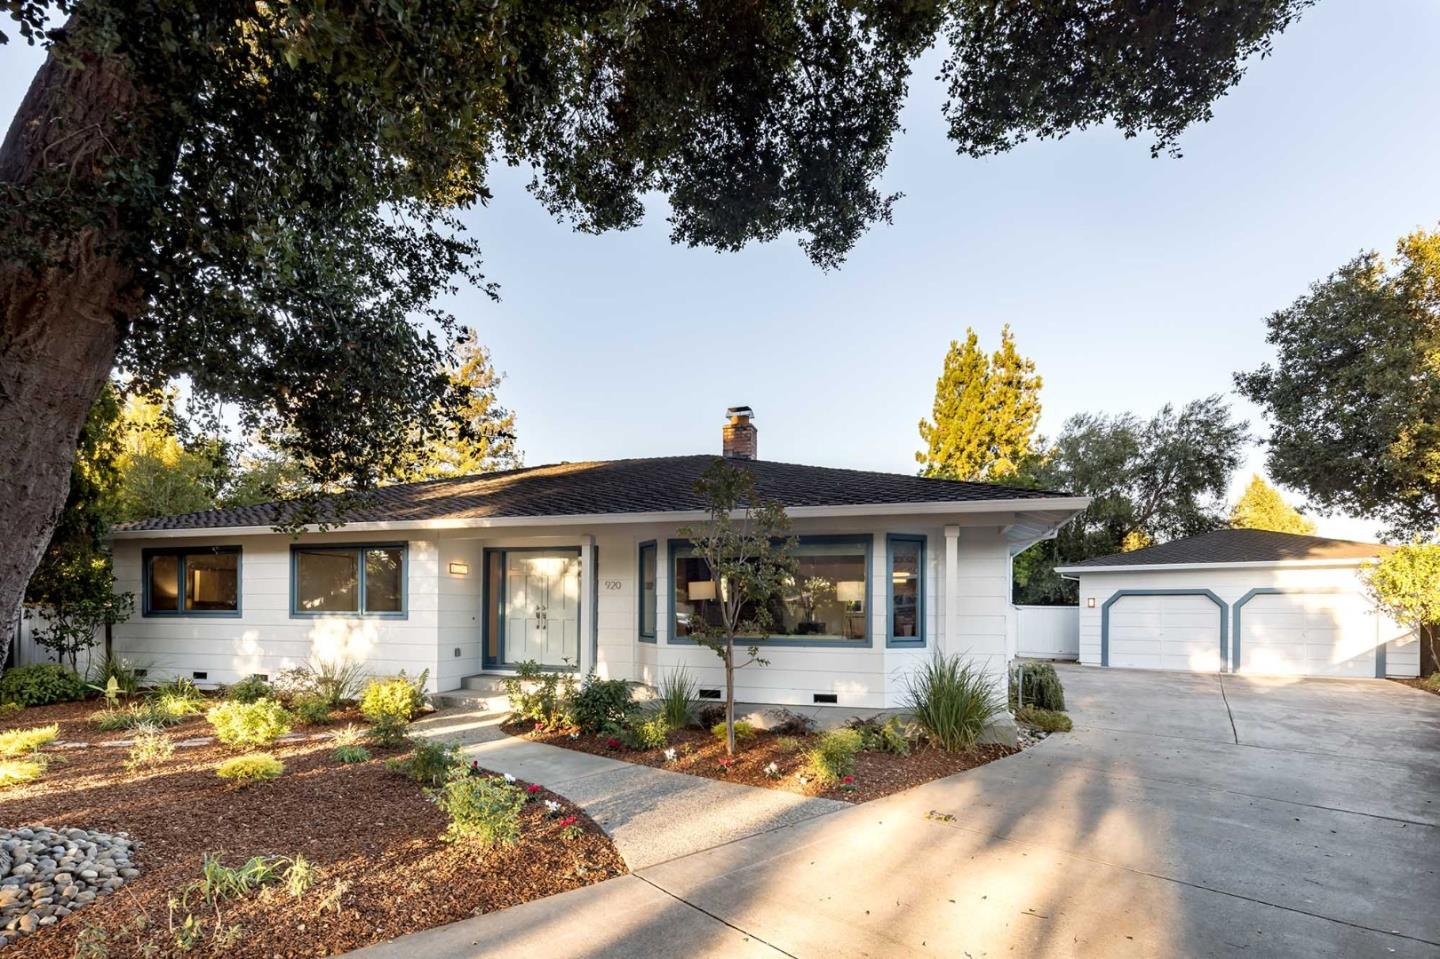 At the end of a peaceful cul-de-sac in sought-after Los Altos, this masterfully remodeled home stands ready to meet a variety of lifestyle needs. Offering 3 bedrooms and 2.5 baths across 2,377 sq. ft. of living space (per county) on a lot of .30 acres (per county), this bright, light home boasts comfortable living spaces and an inviting ambiance. Spacious formal rooms are perfect for entertaining, including the living room with a focal point, two-way fireplace shared with the family room. The superb kitchen has everything needed for the ambitious chef, including a delightful eat-in area. Enjoy the comfort of the master bedroom, which features access to the vast, private backyard with a large patio and lawn. Topping it all off, this desirable South Los Altos location is close to parks, downtown Los Altos and Mountain View, and offers access to acclaimed Los Altos schools (buyer to verify eligibility).